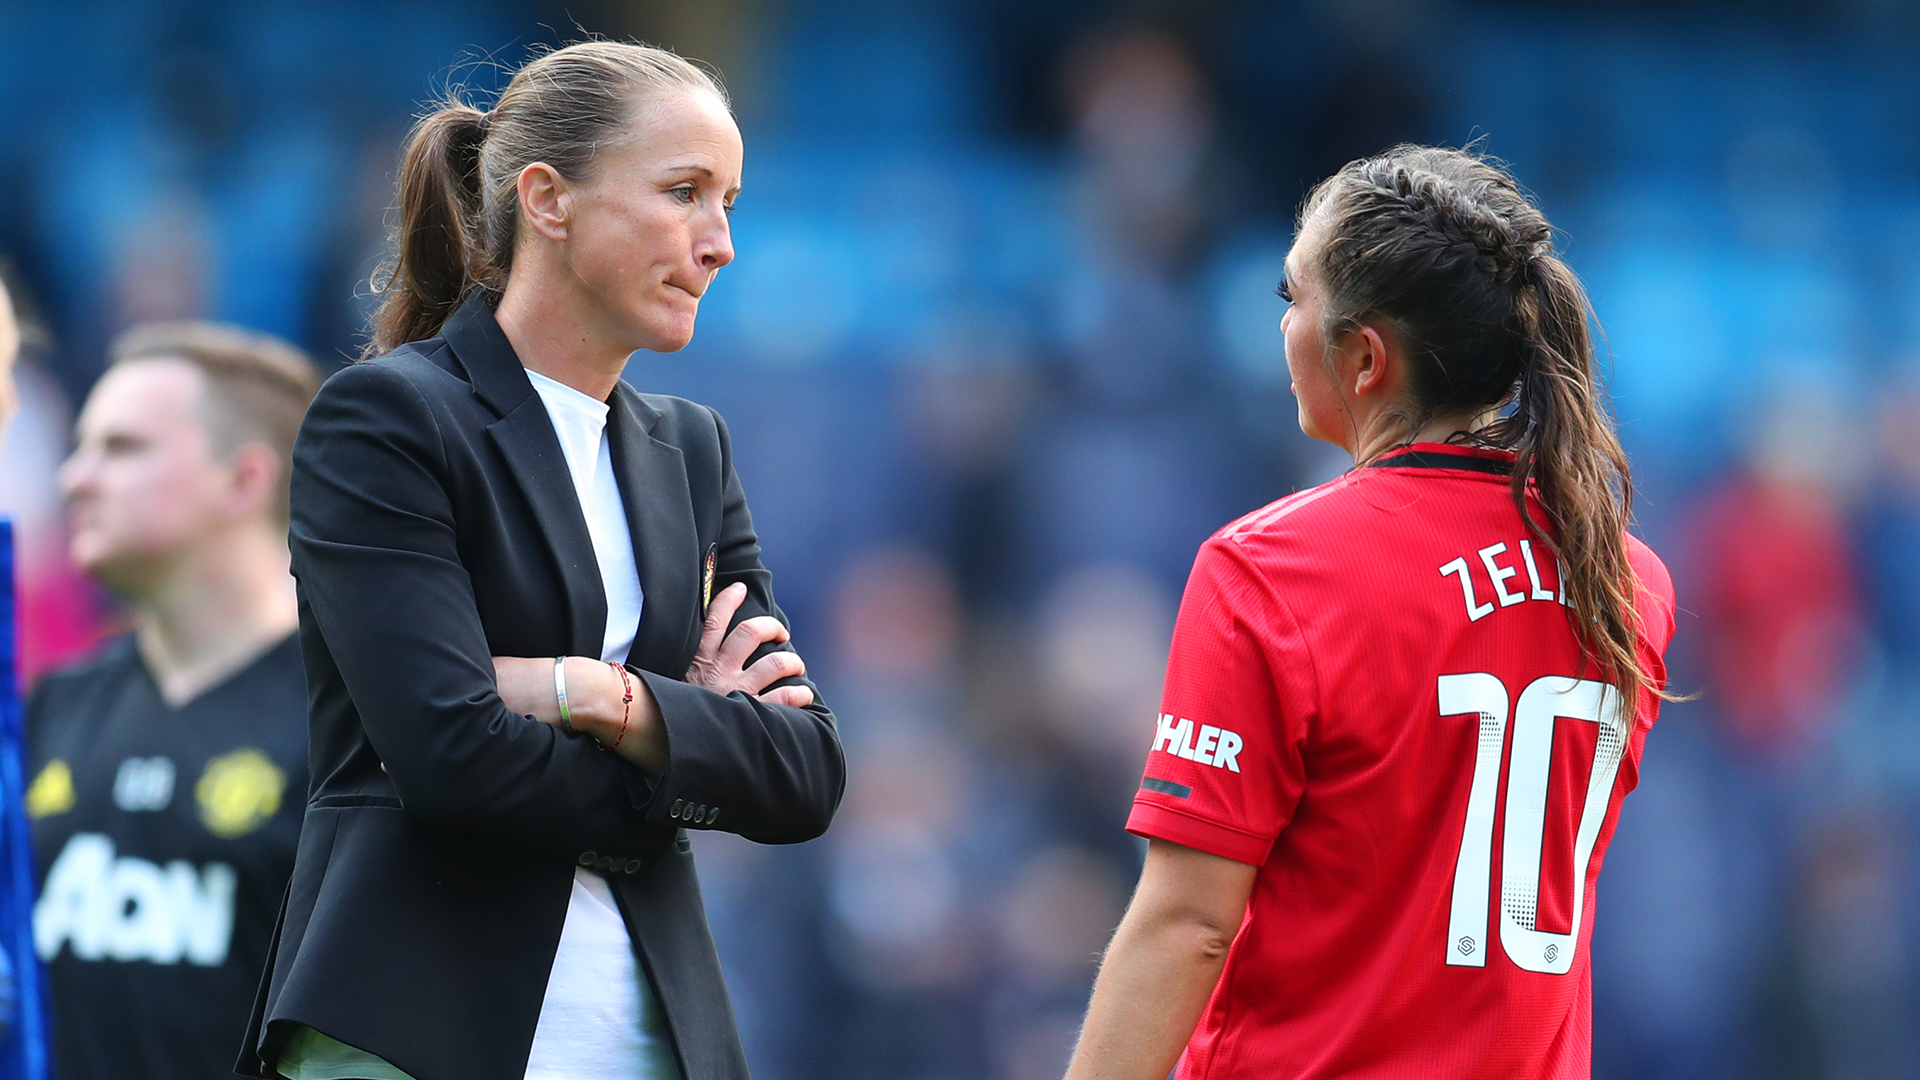 'I'm treated the same way as Solskjaer' – Man Utd boss Stoney embracing criticism in women's game